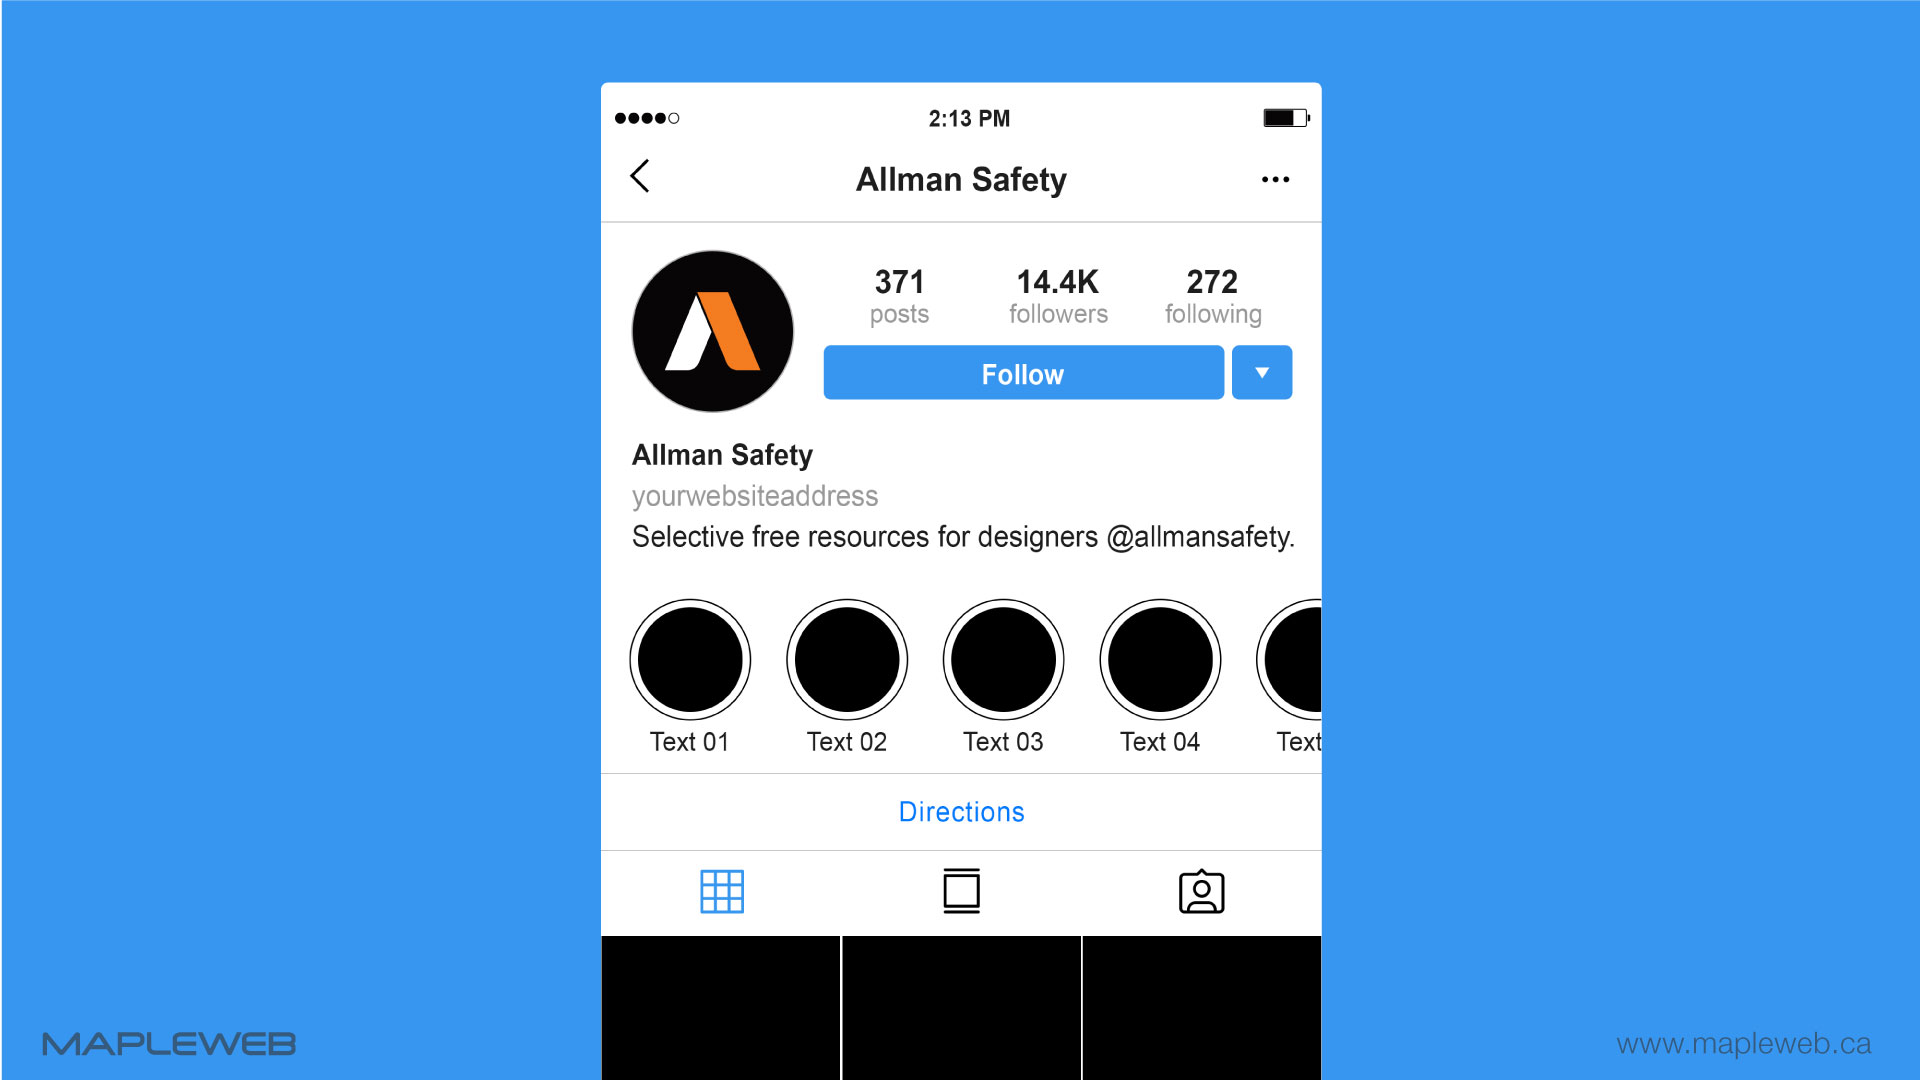 allman-safety-brand-logo-design-by-mapleweb-vancouver-canada-dp-on-instagram-mock